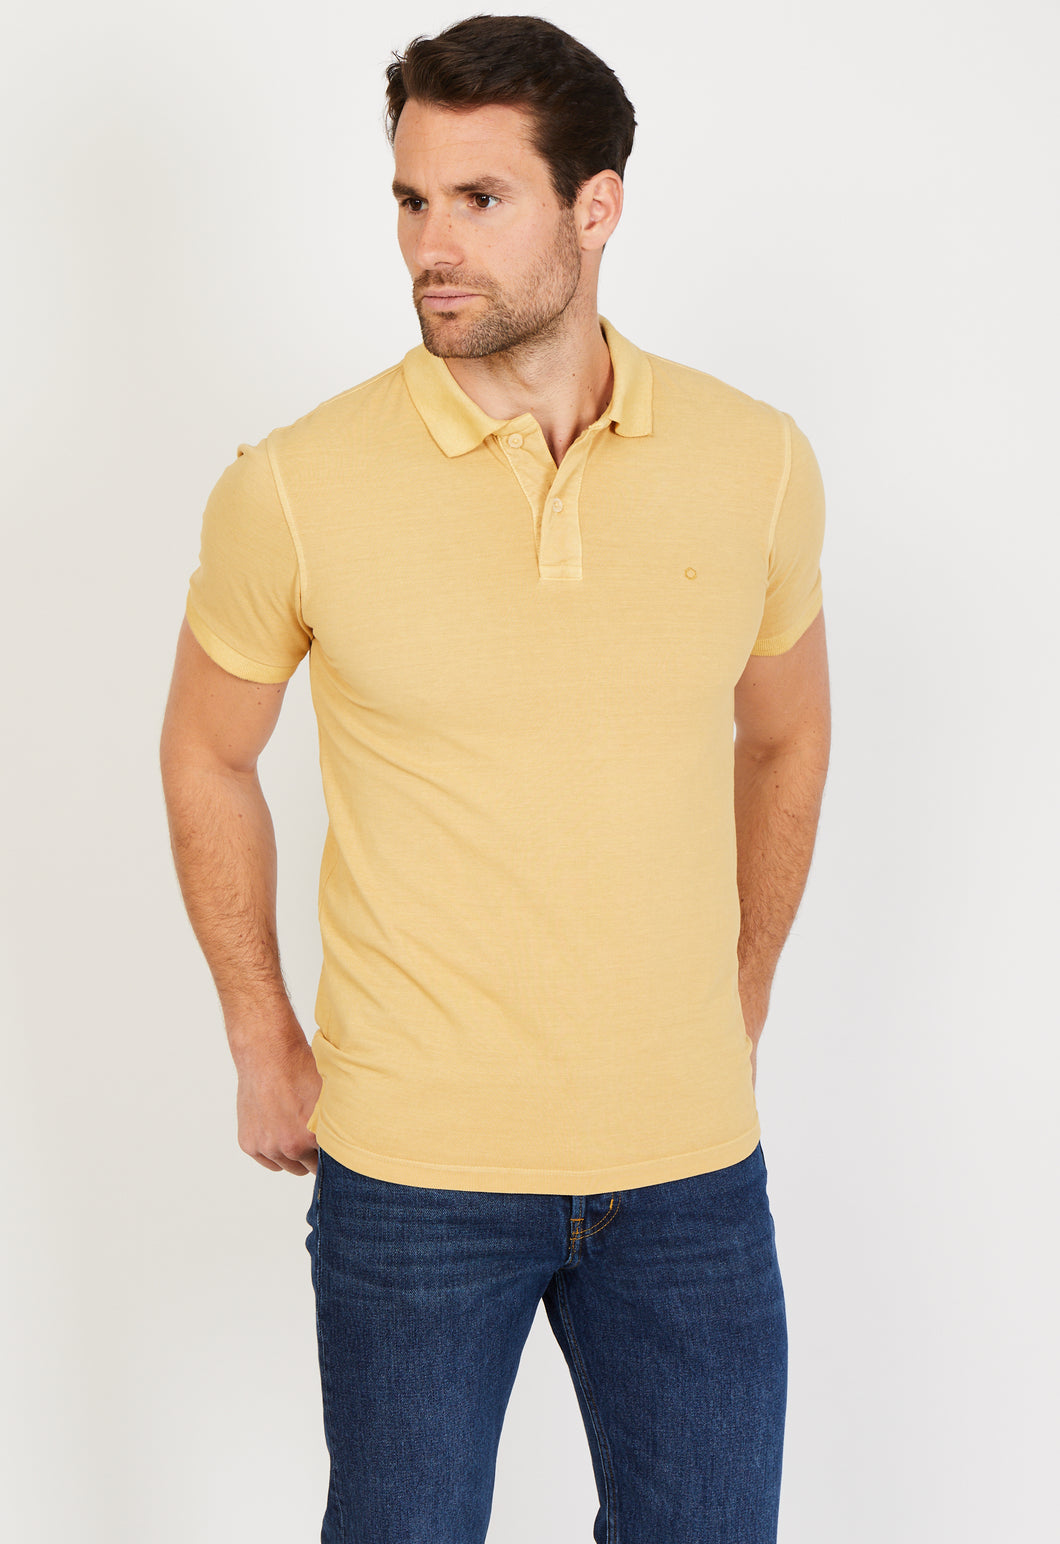 Polo Shirt Cotton Pique